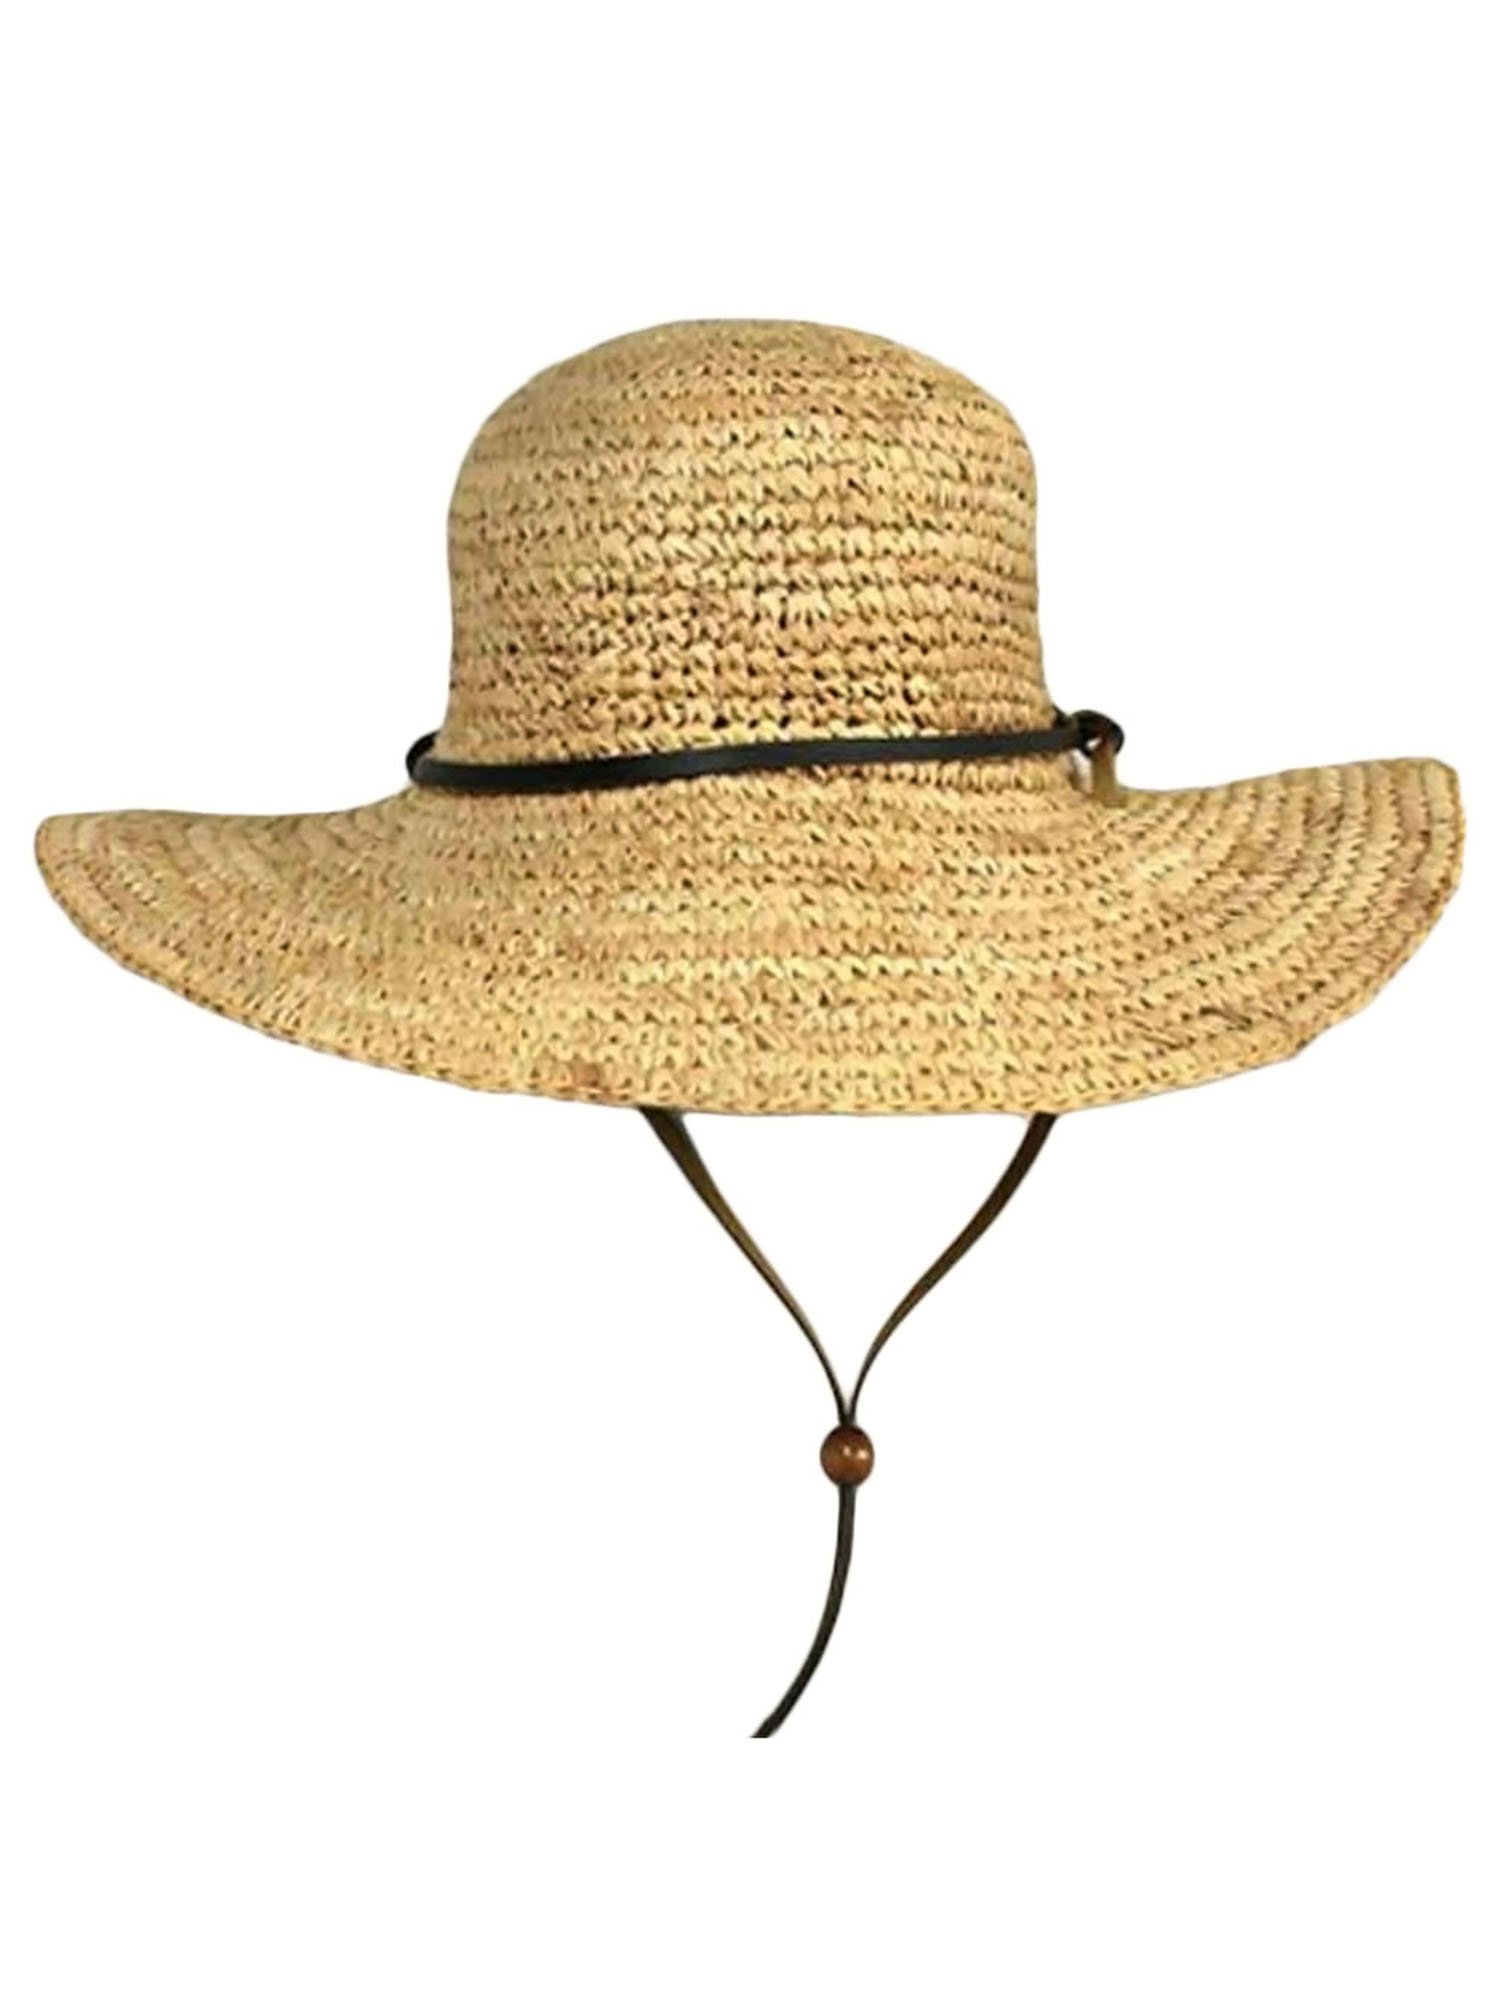 Natural Tan Wide Brim Floppy Sun Hat With Chin Cord by Luxury Divas